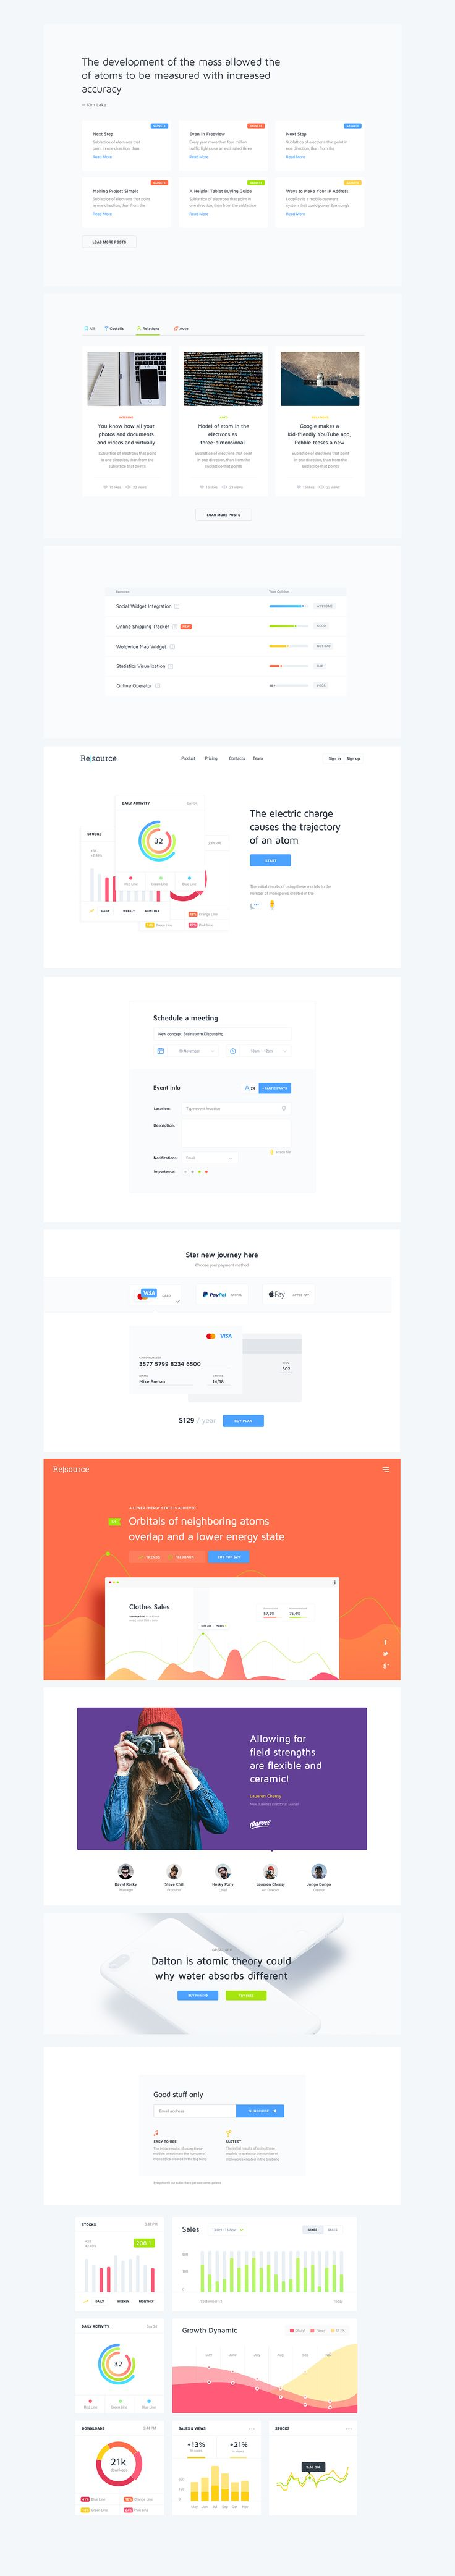 Resourсe | UI/UX Tool for Web Services on Behance